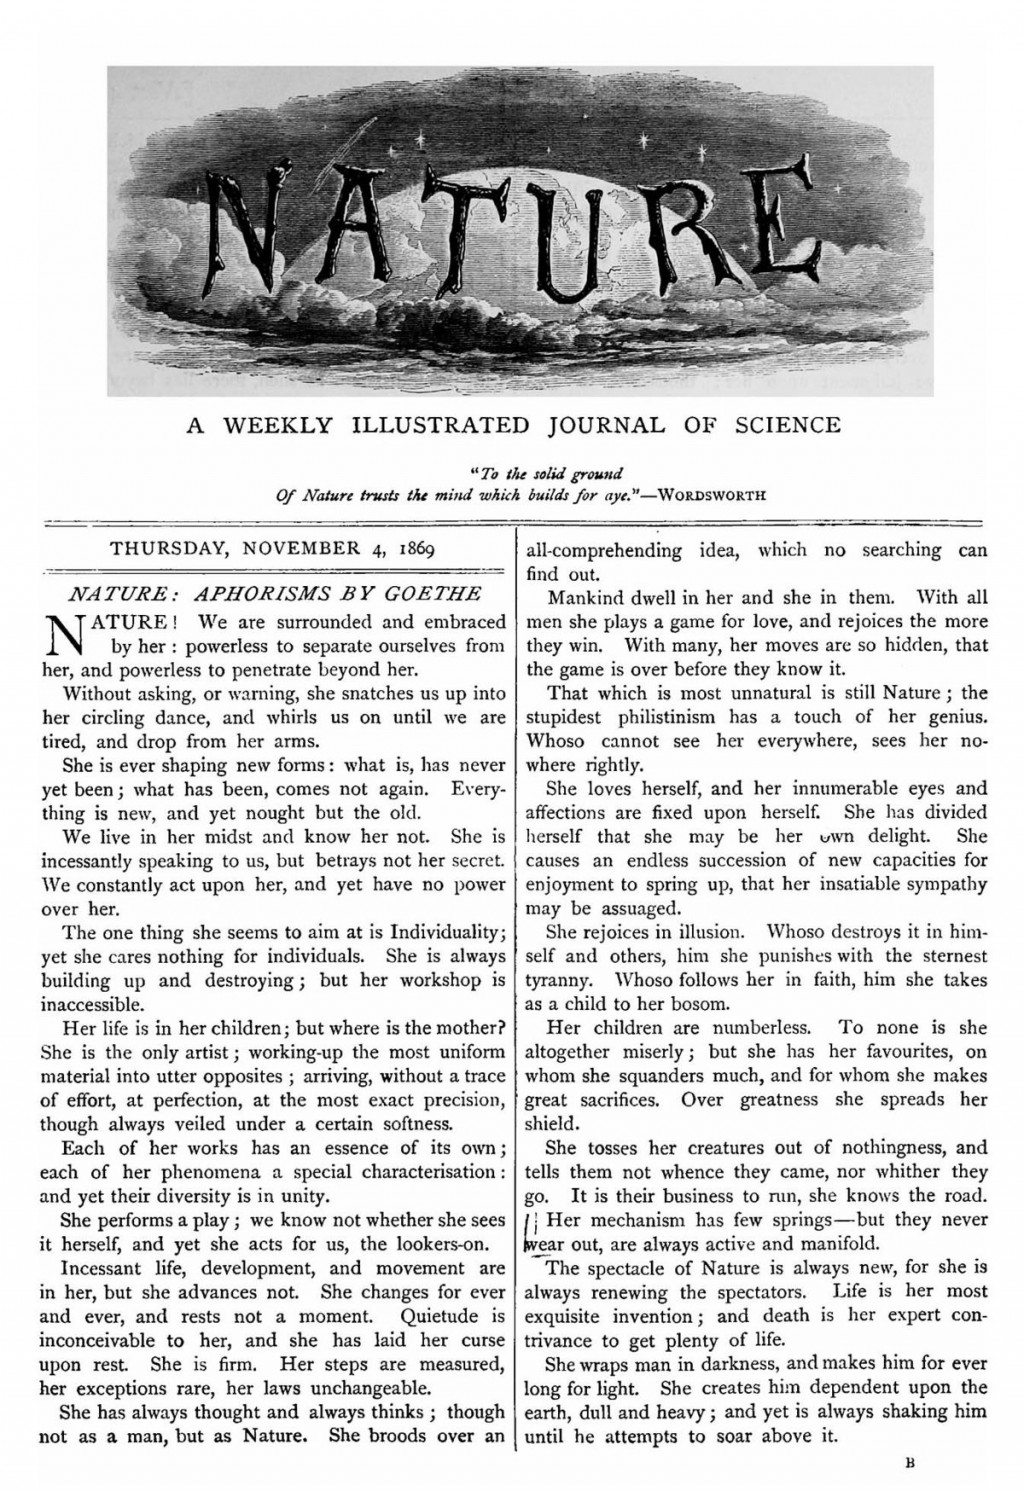 013 1200px Nature Cover2c November 42c 1869 Research Paper Best Journals To Publish Stunning Papers In Computer Science List Of Large